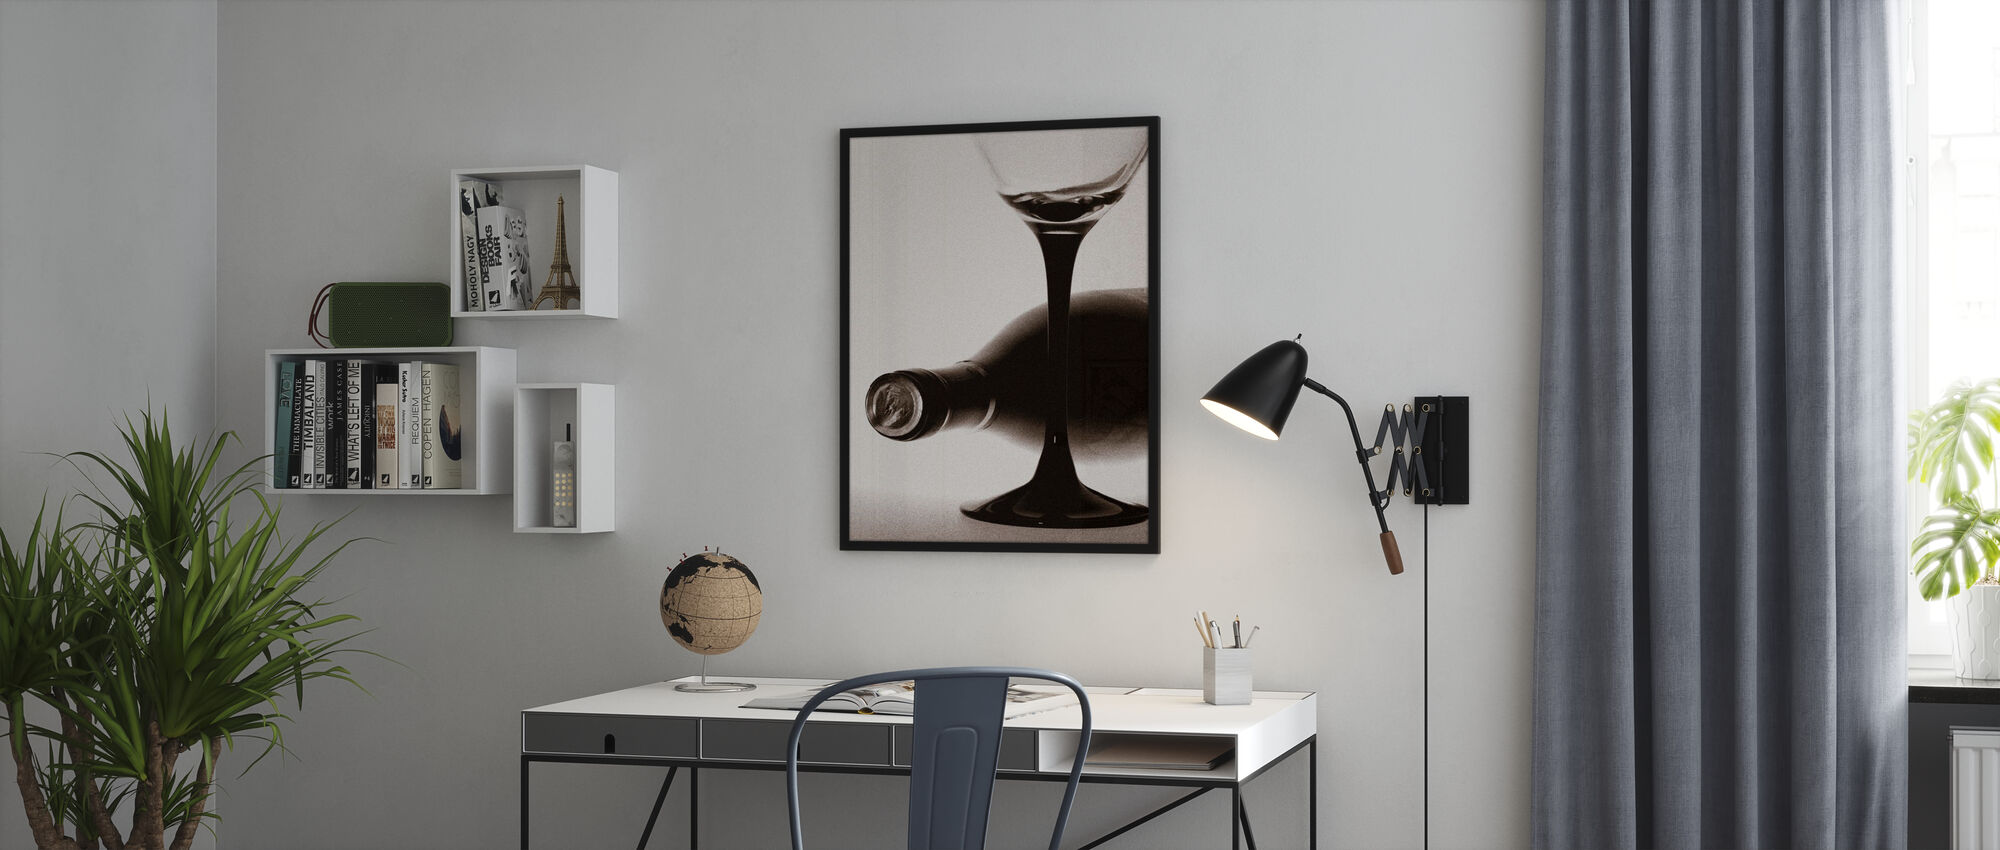 Grainy Winebottle - Poster - Office